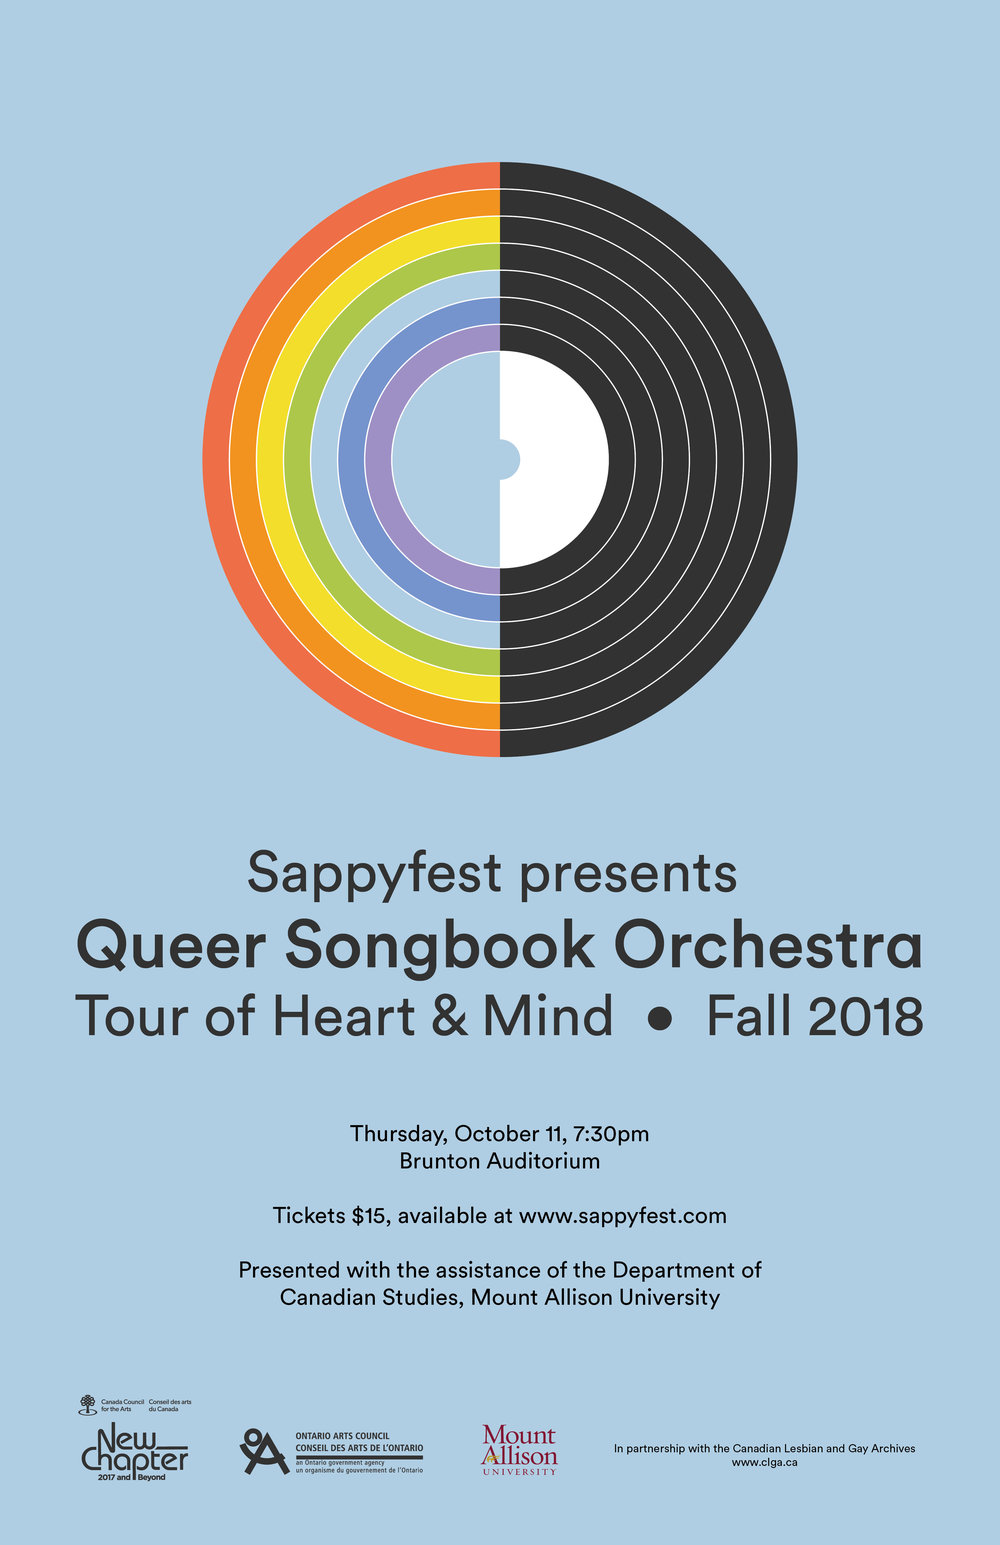 qso_hearts-and-mind-tour_sackville.jpg